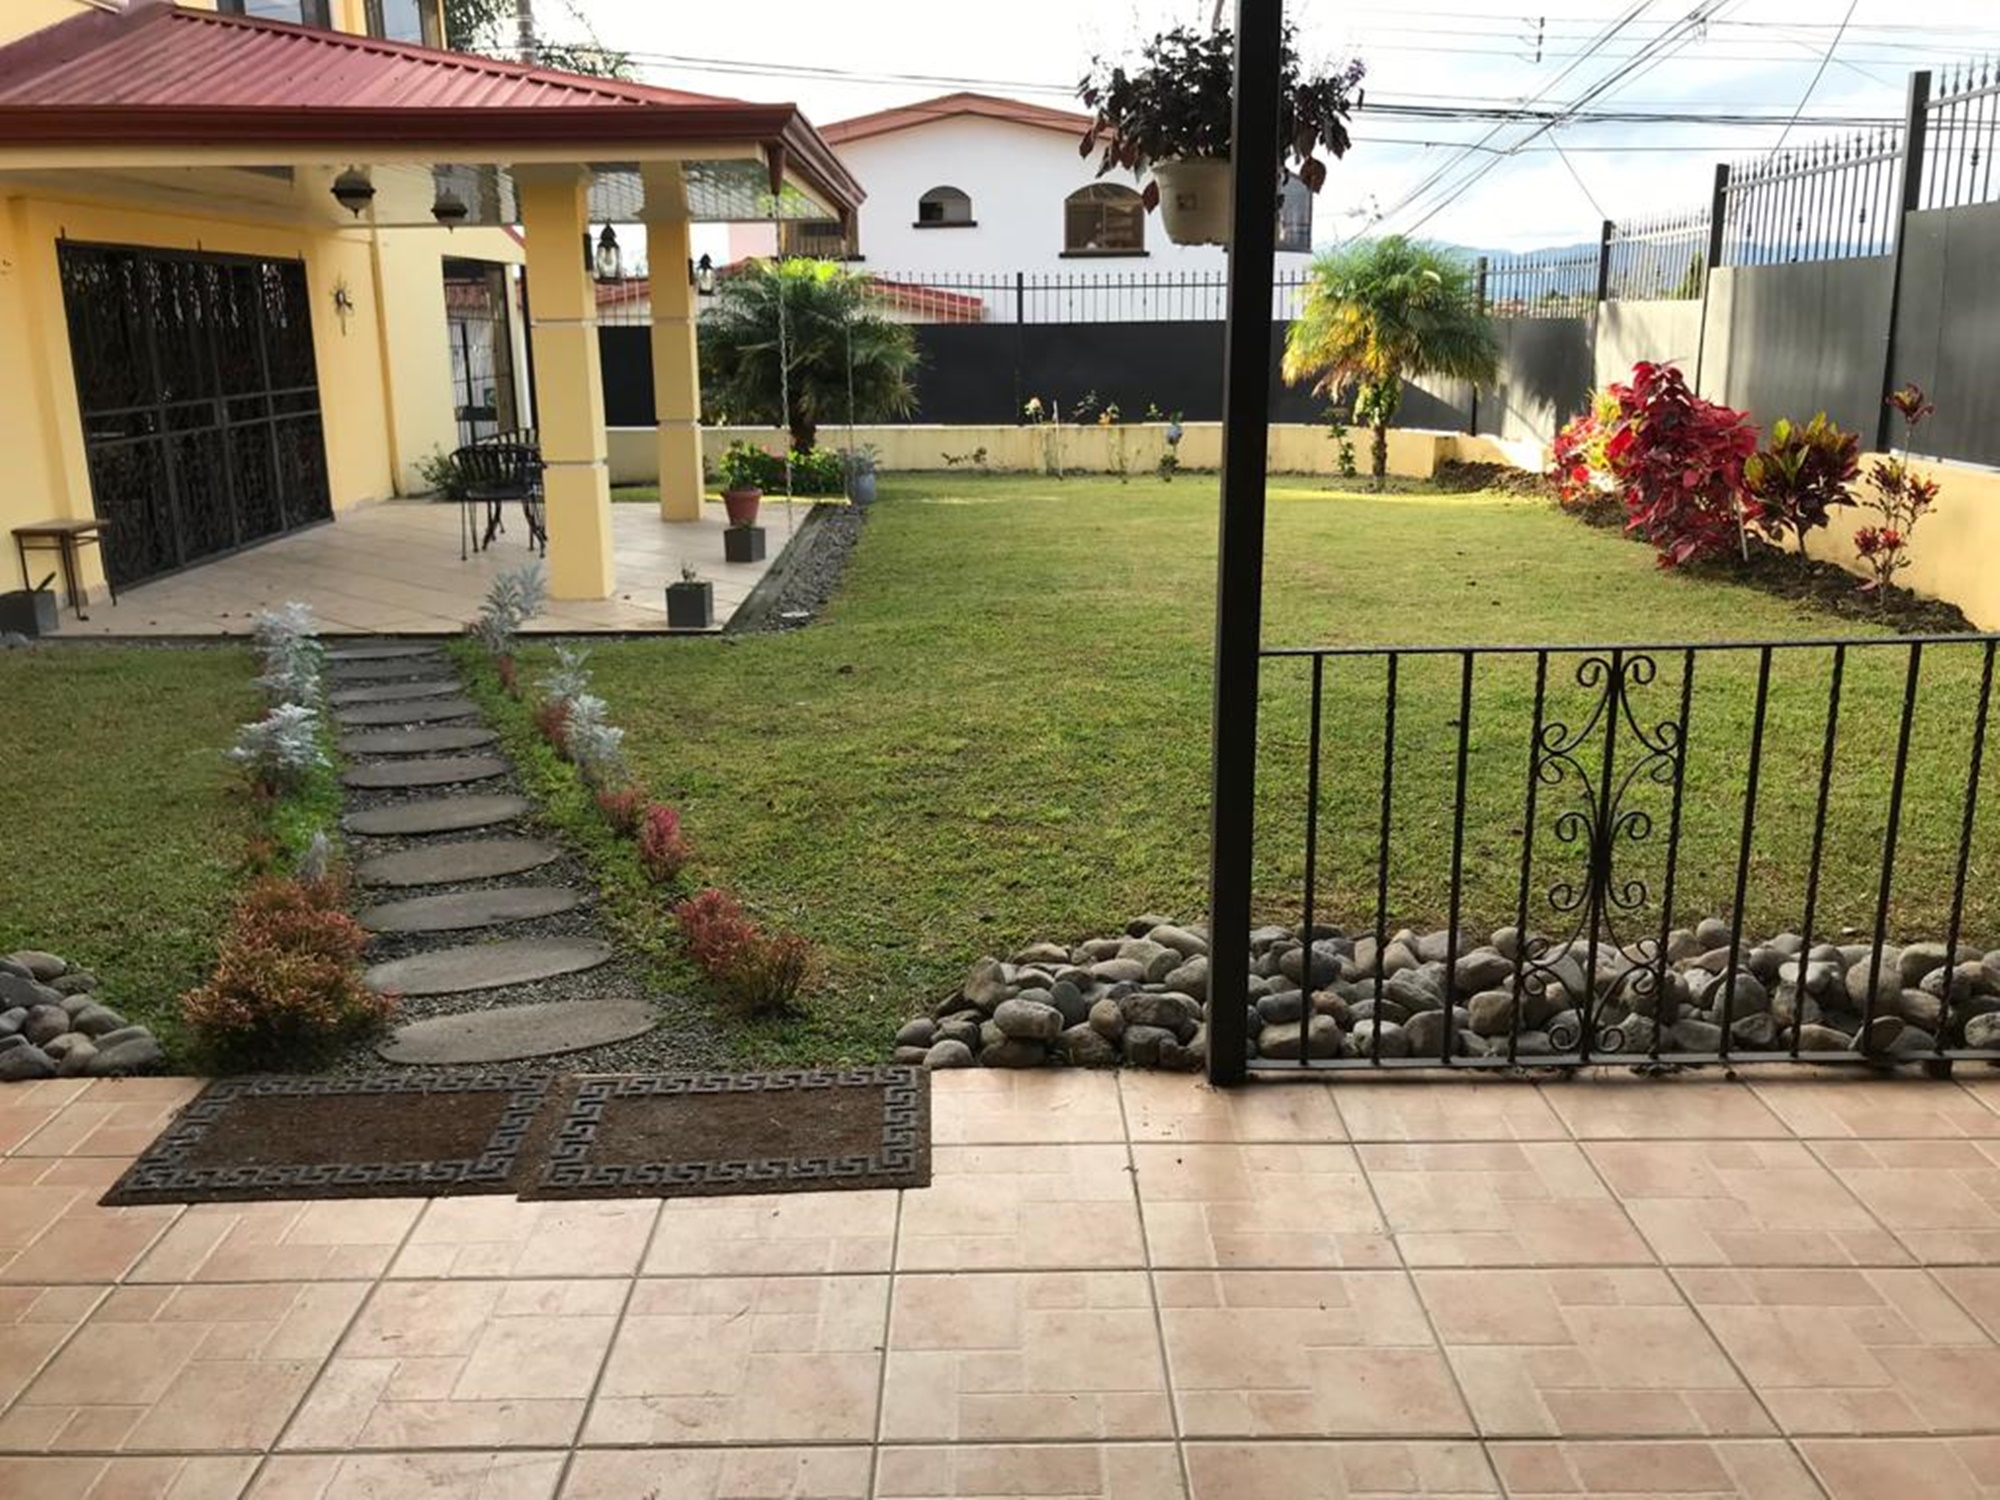 Moravia 4 Br Executive Home With Garden For Sale Costa